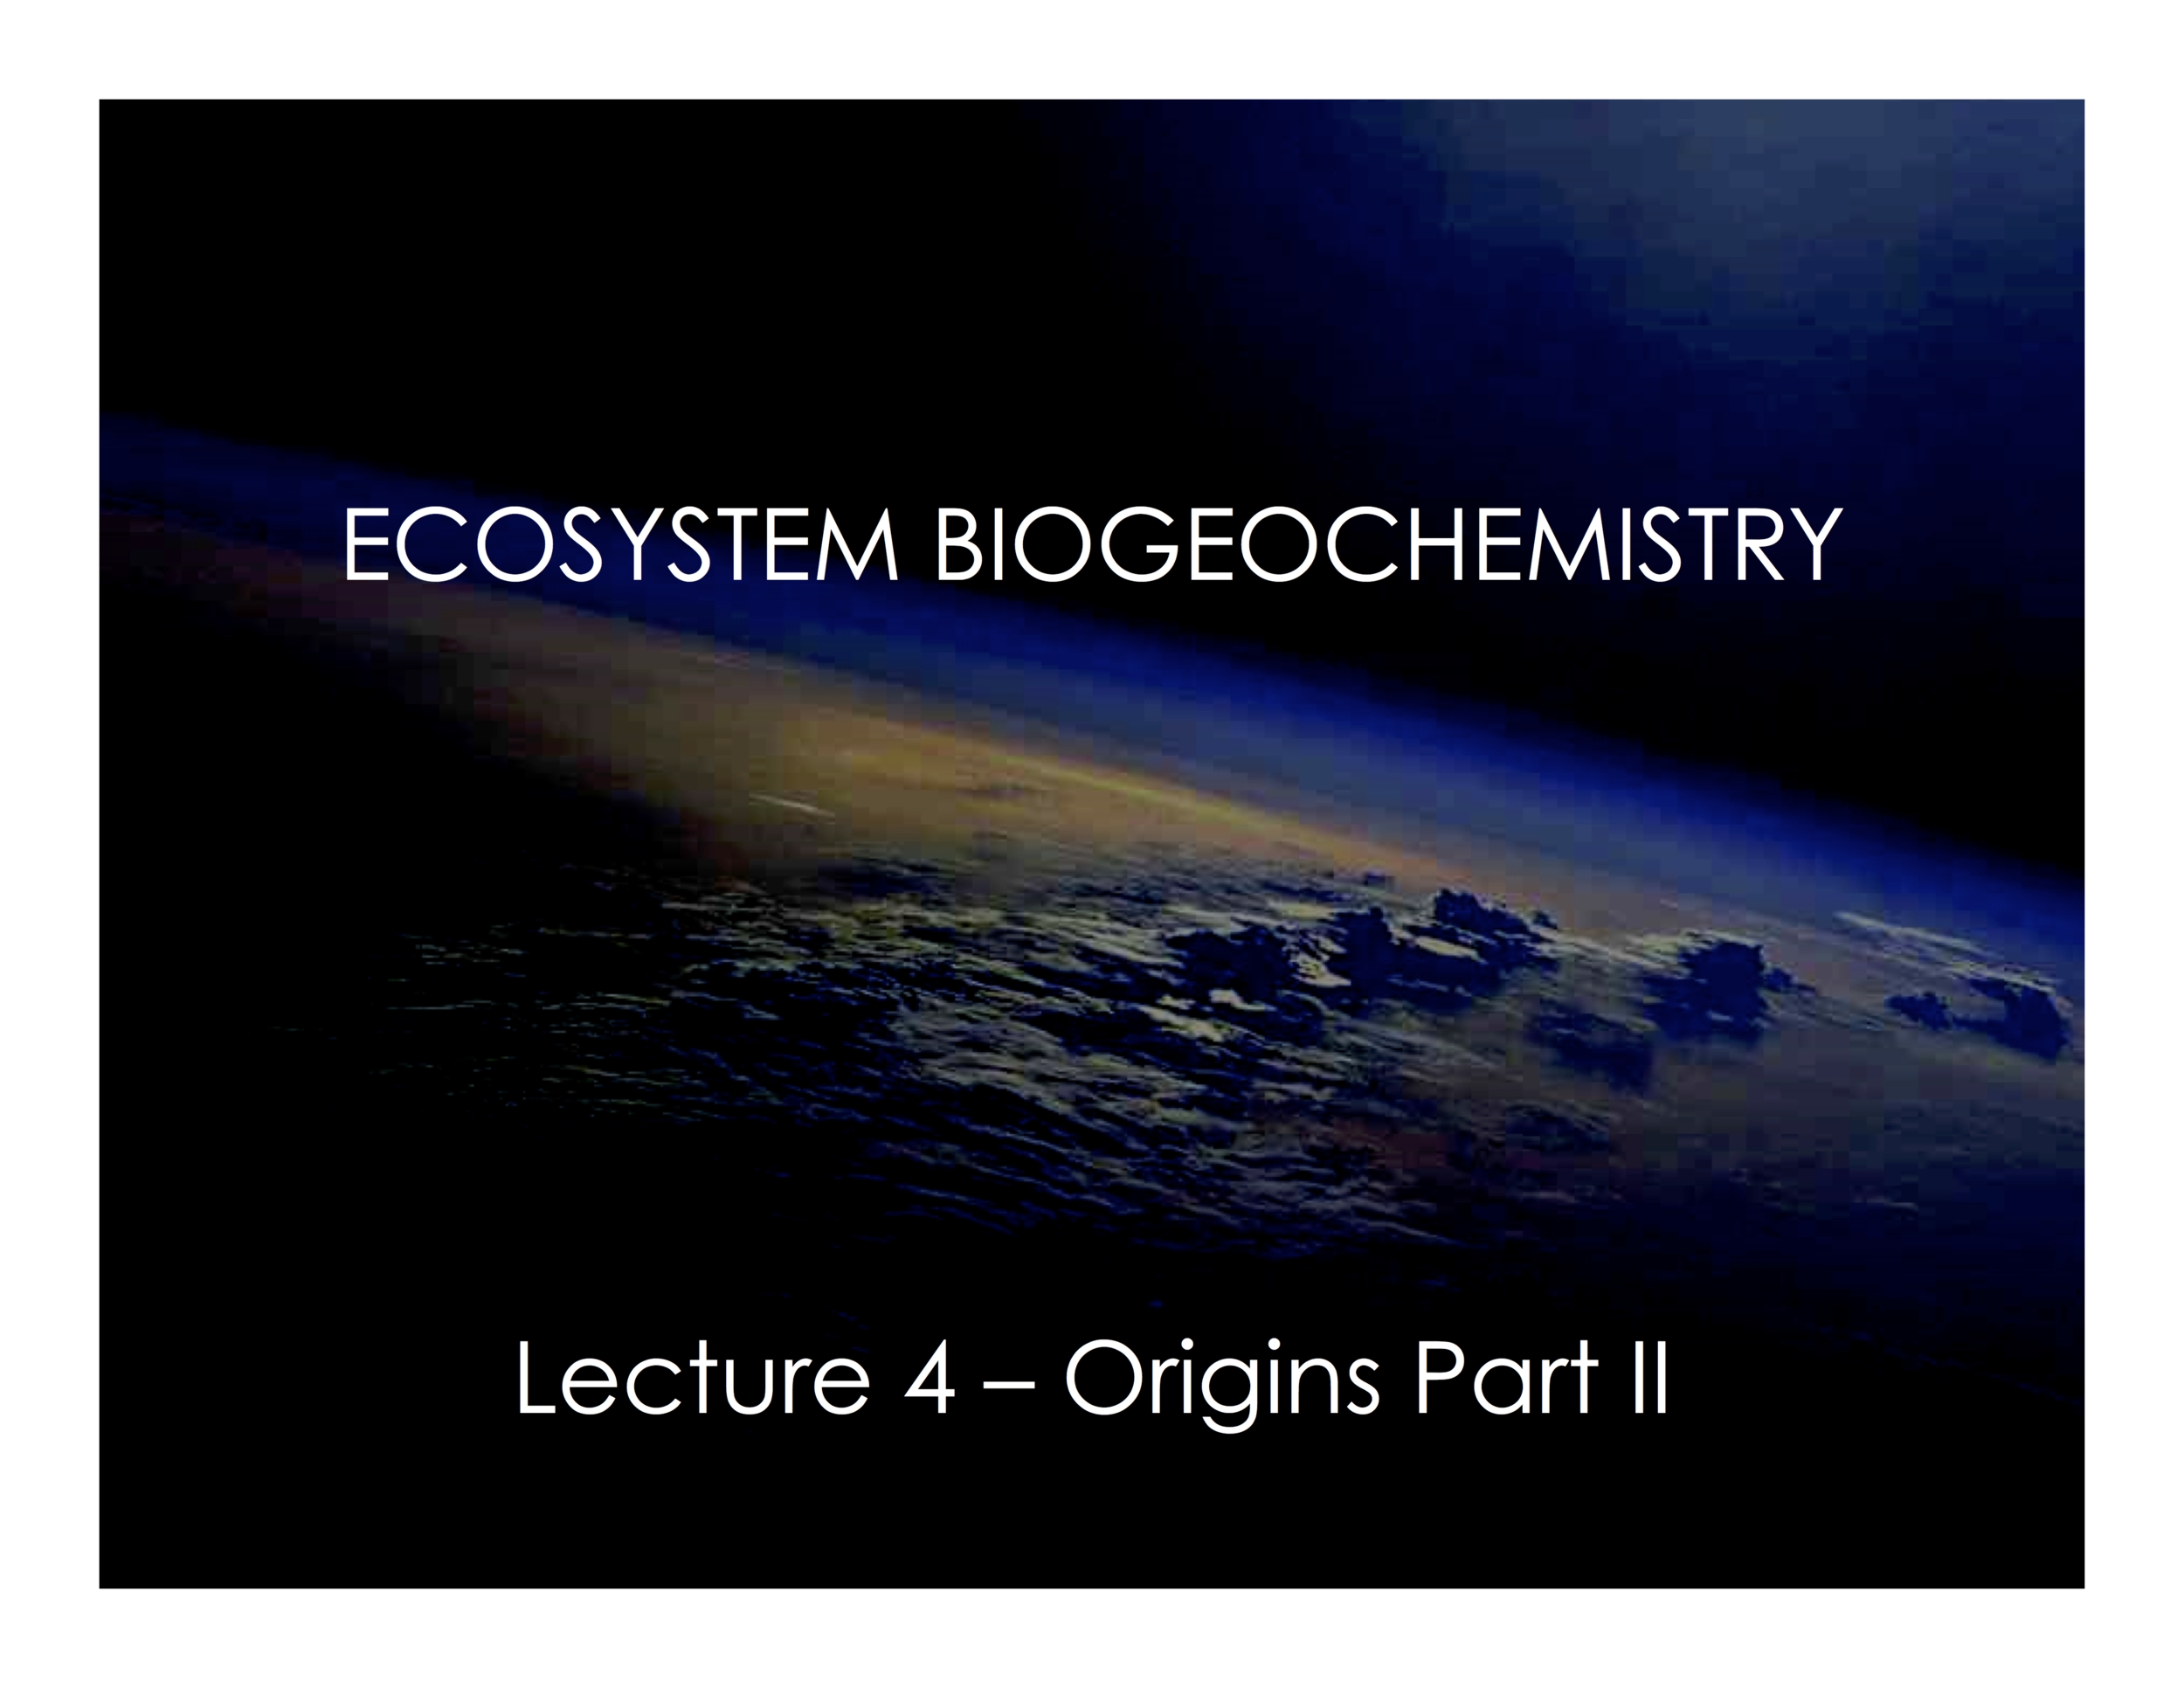 Lecture 4 - Origins Part II - COVER.png